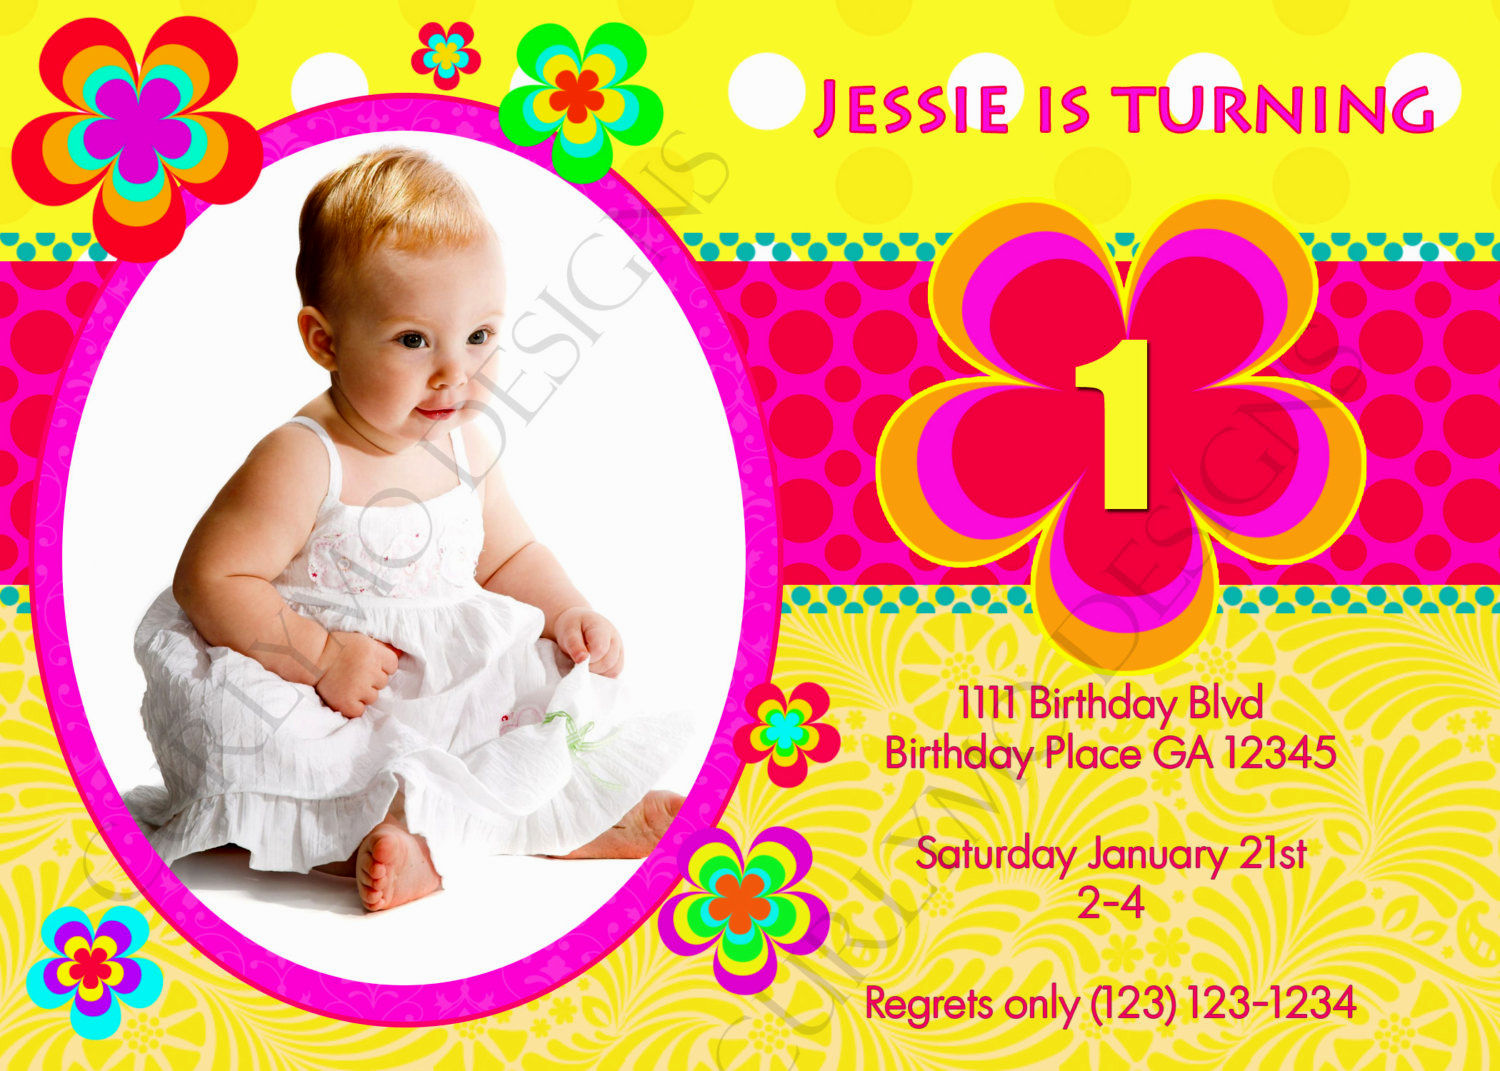 create an birthday invitation card ; simple-creation-birthday-invitation-card-design-perfect-finishing-concept-yellow-color-pink-ribbon-real-photo-picture-baby